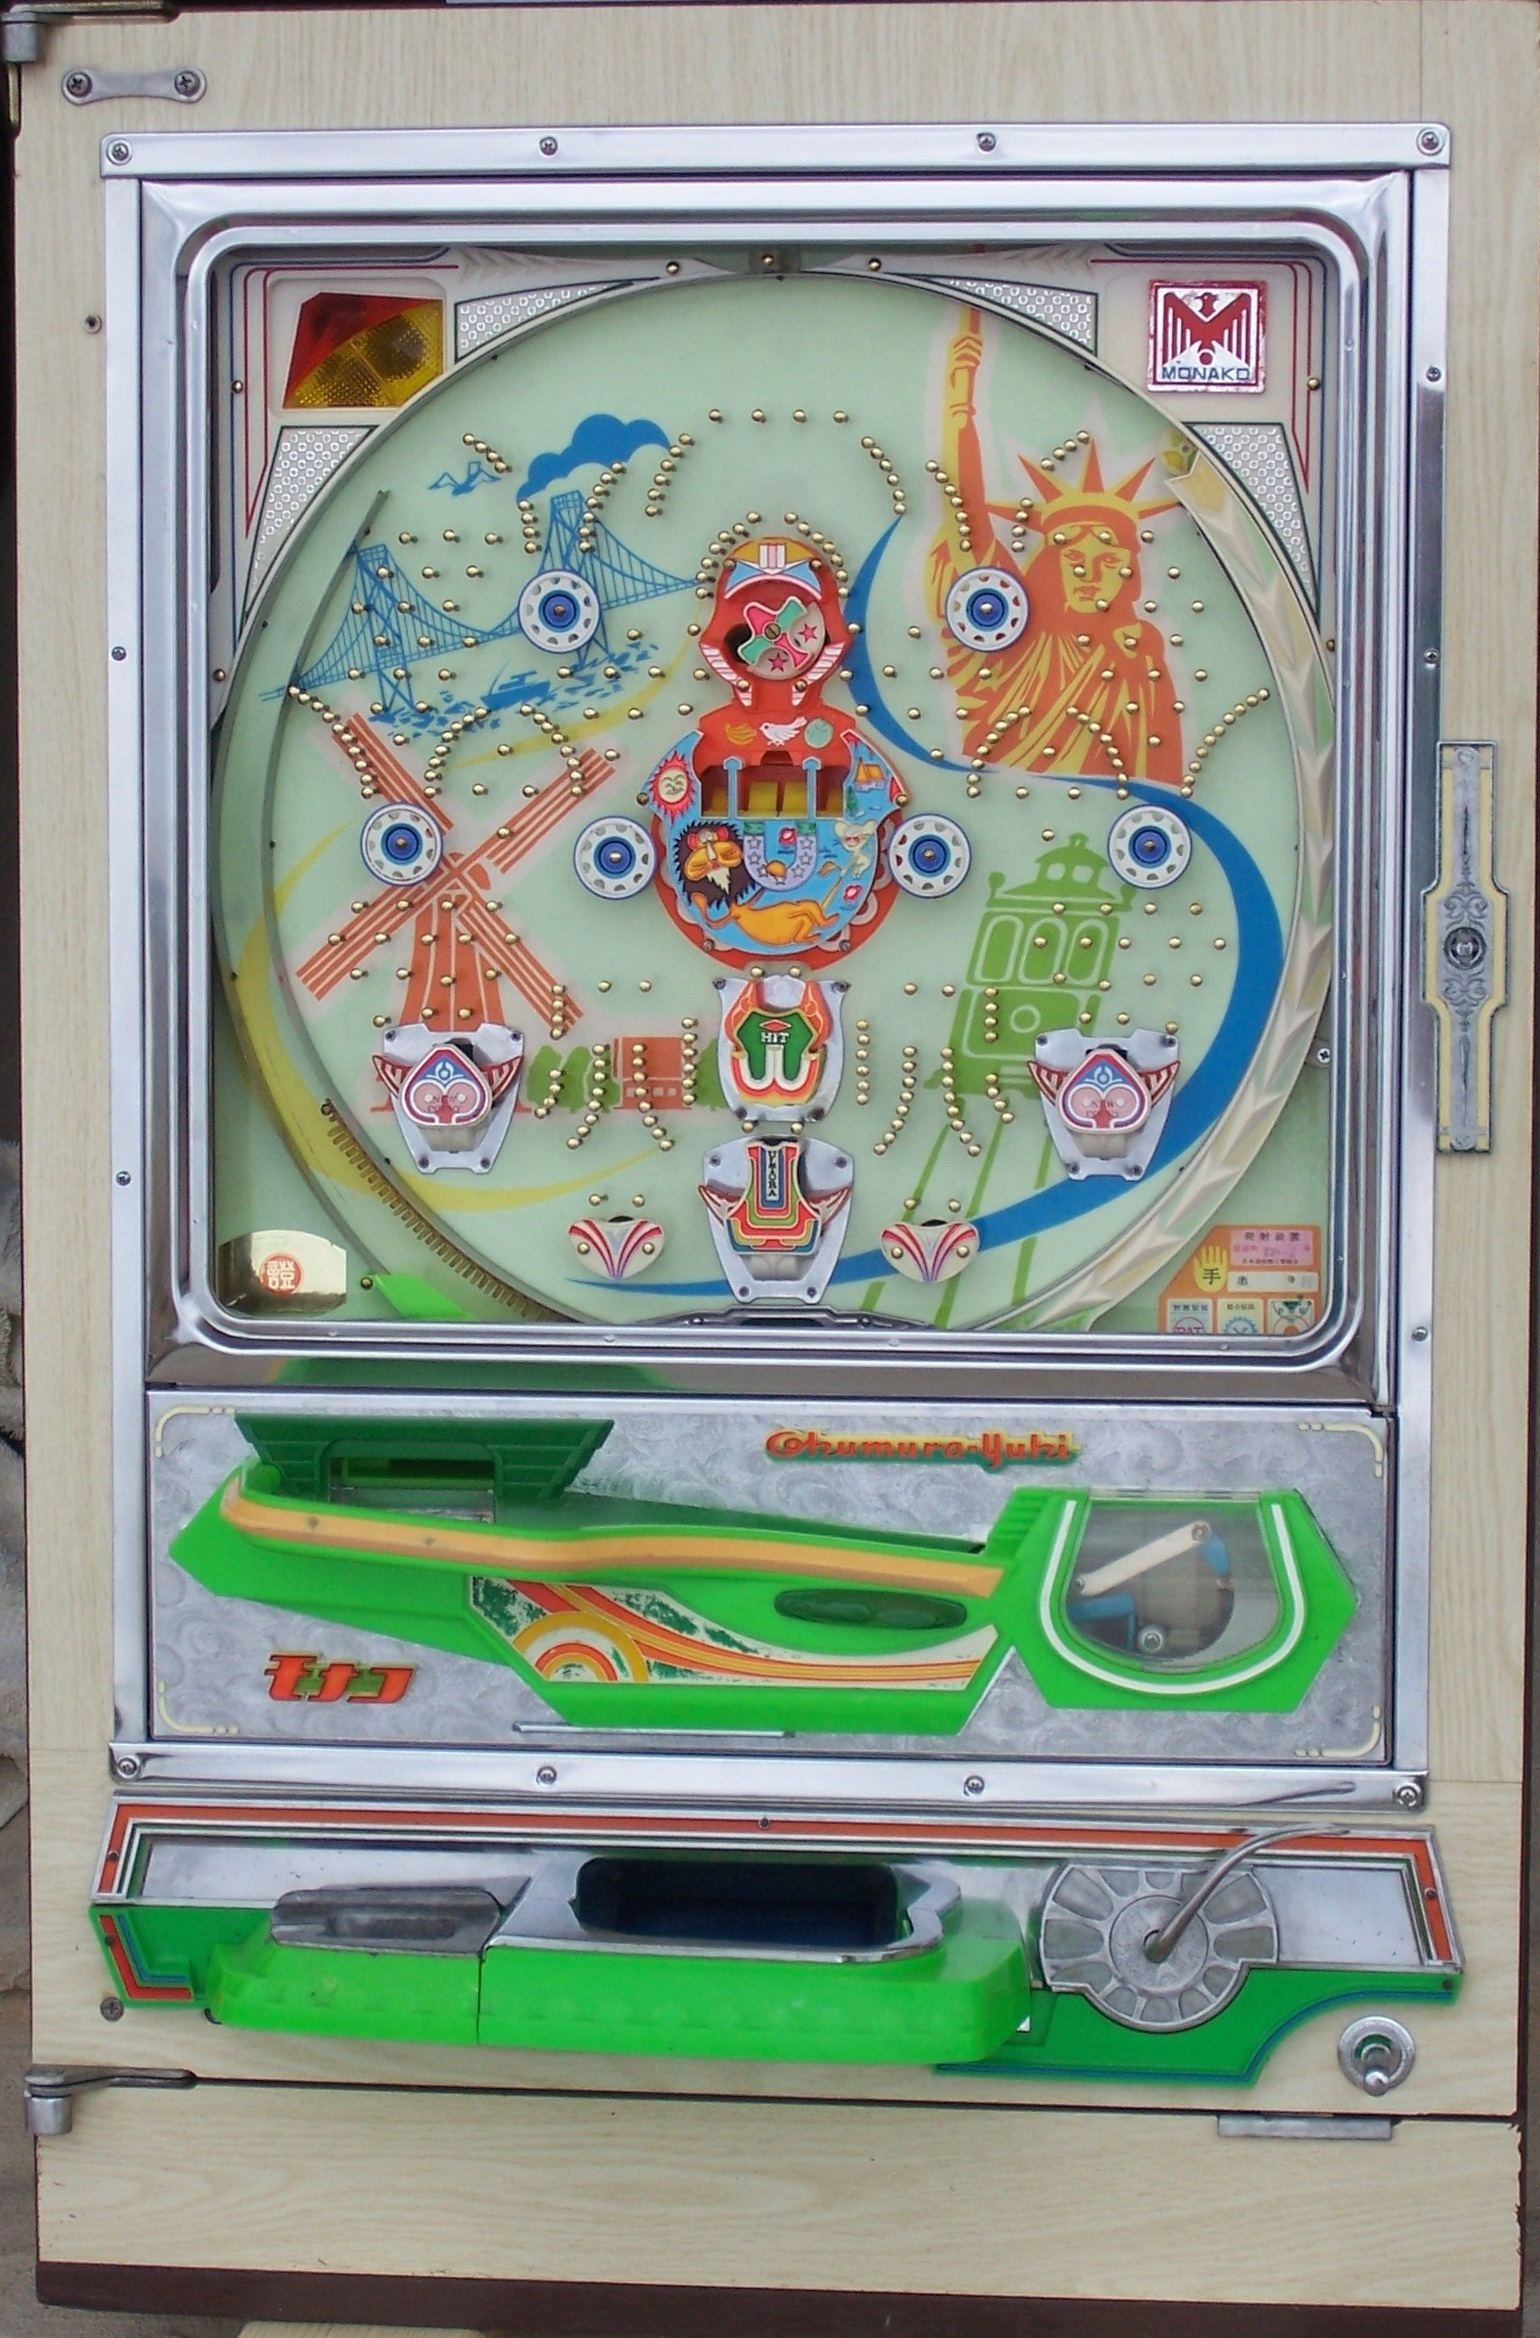 model a wiring diagram what companies made pachinko machines  pachinkoman  what companies made pachinko machines  pachinkoman